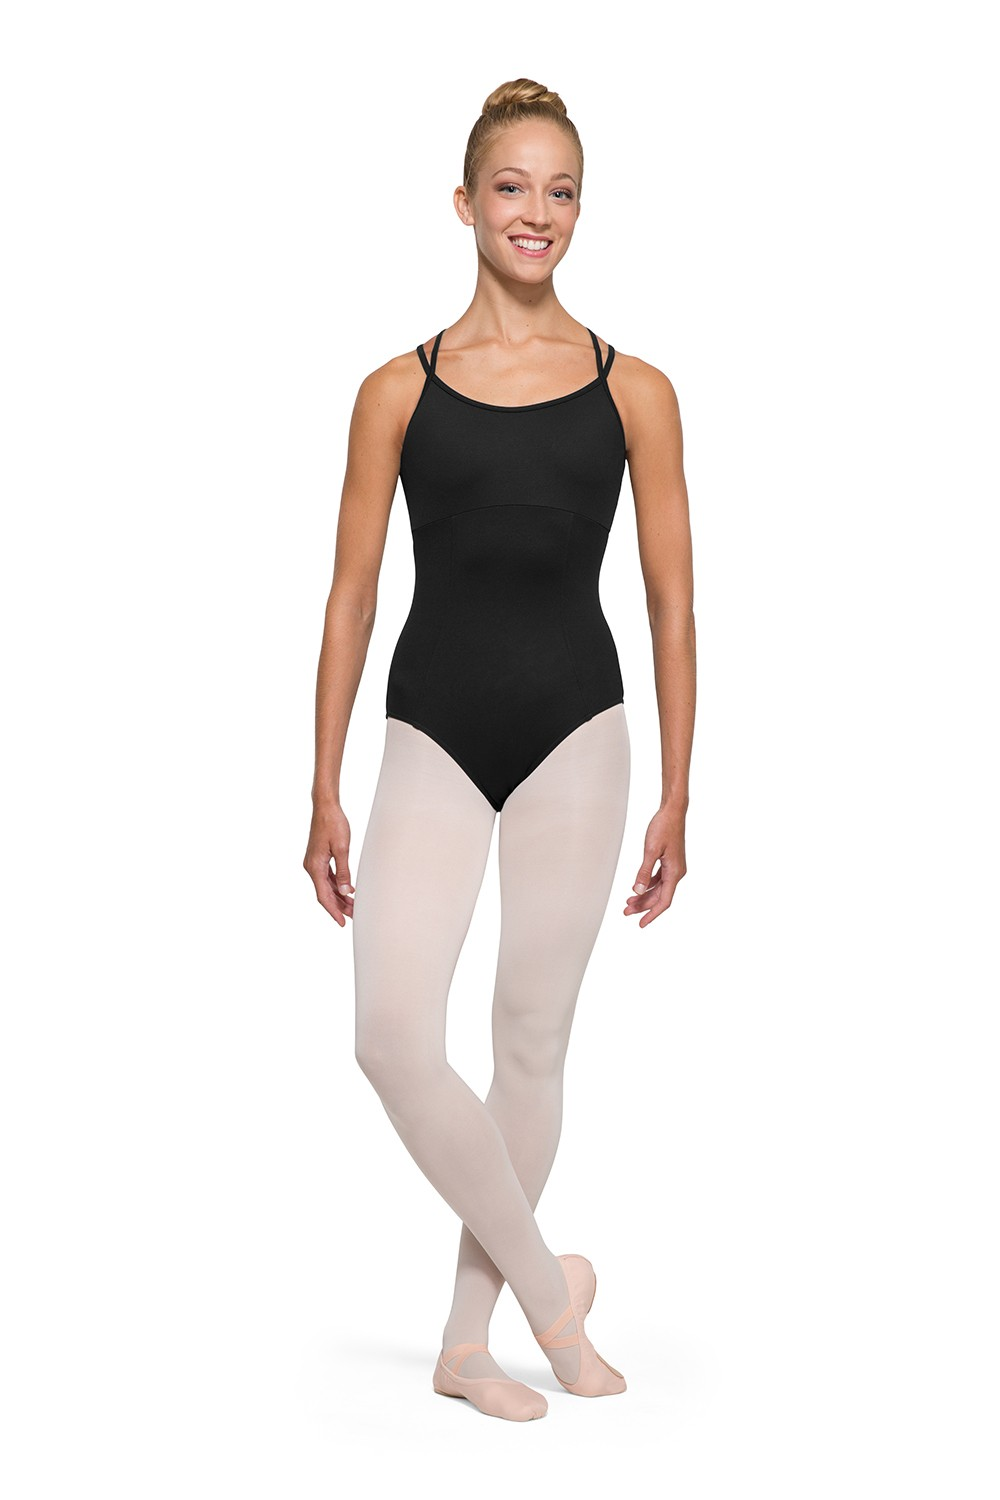 Alexis Women's Dance Leotards